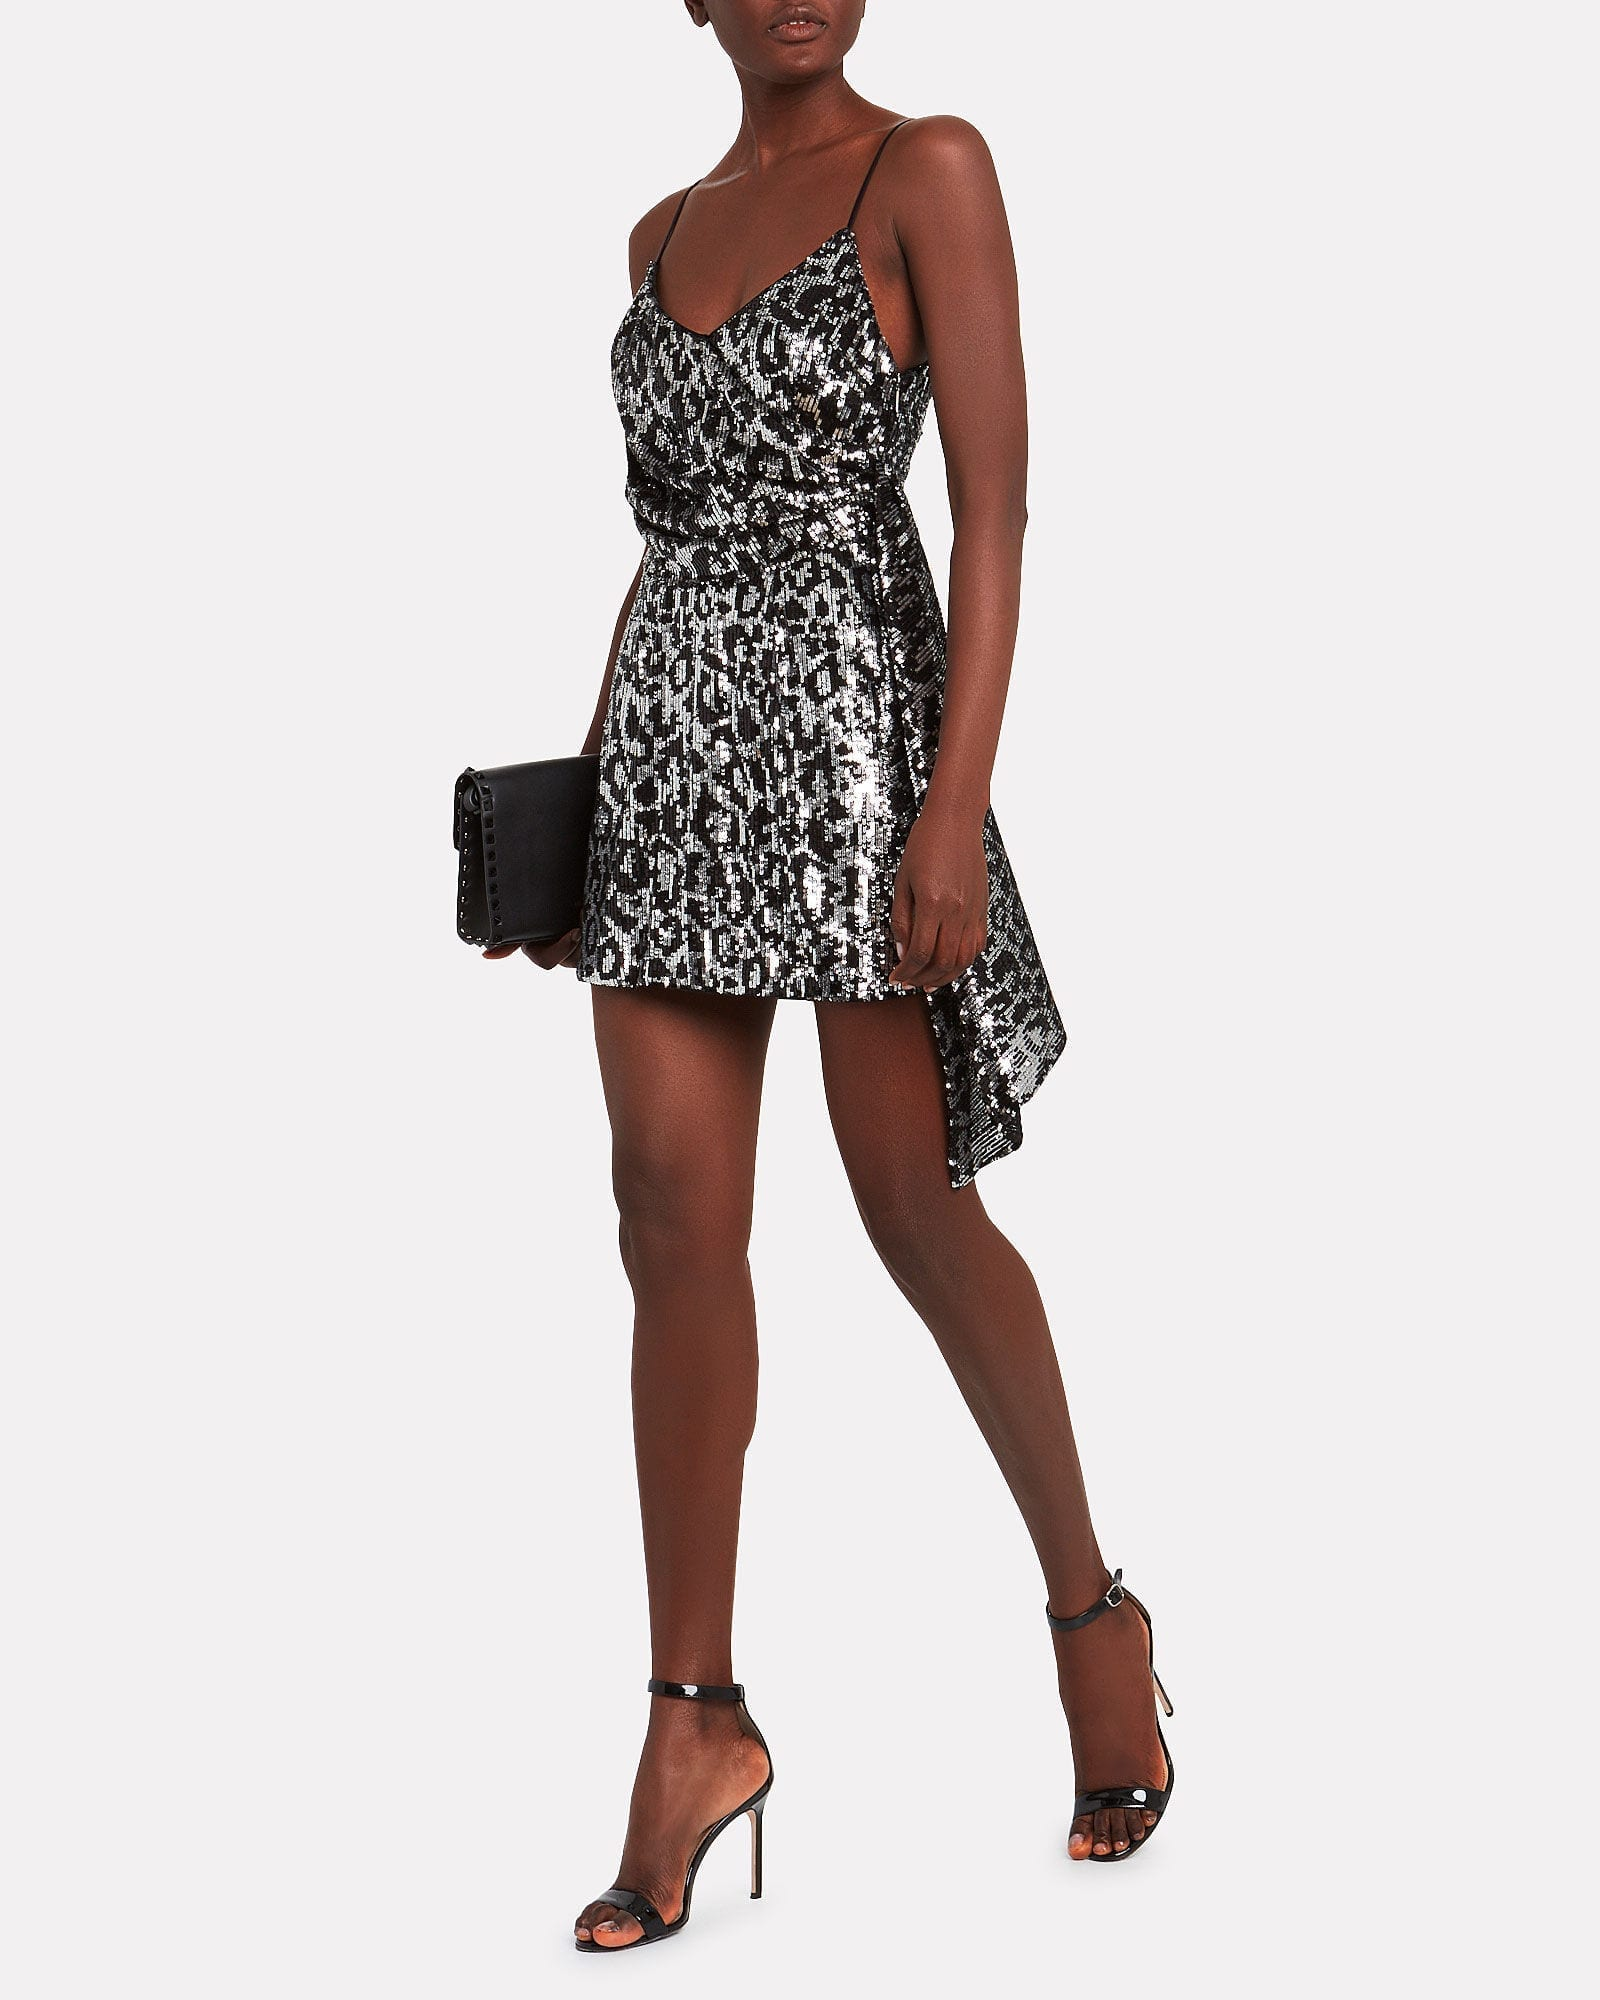 SAYLOR Aidy Sequin Leopard Dress